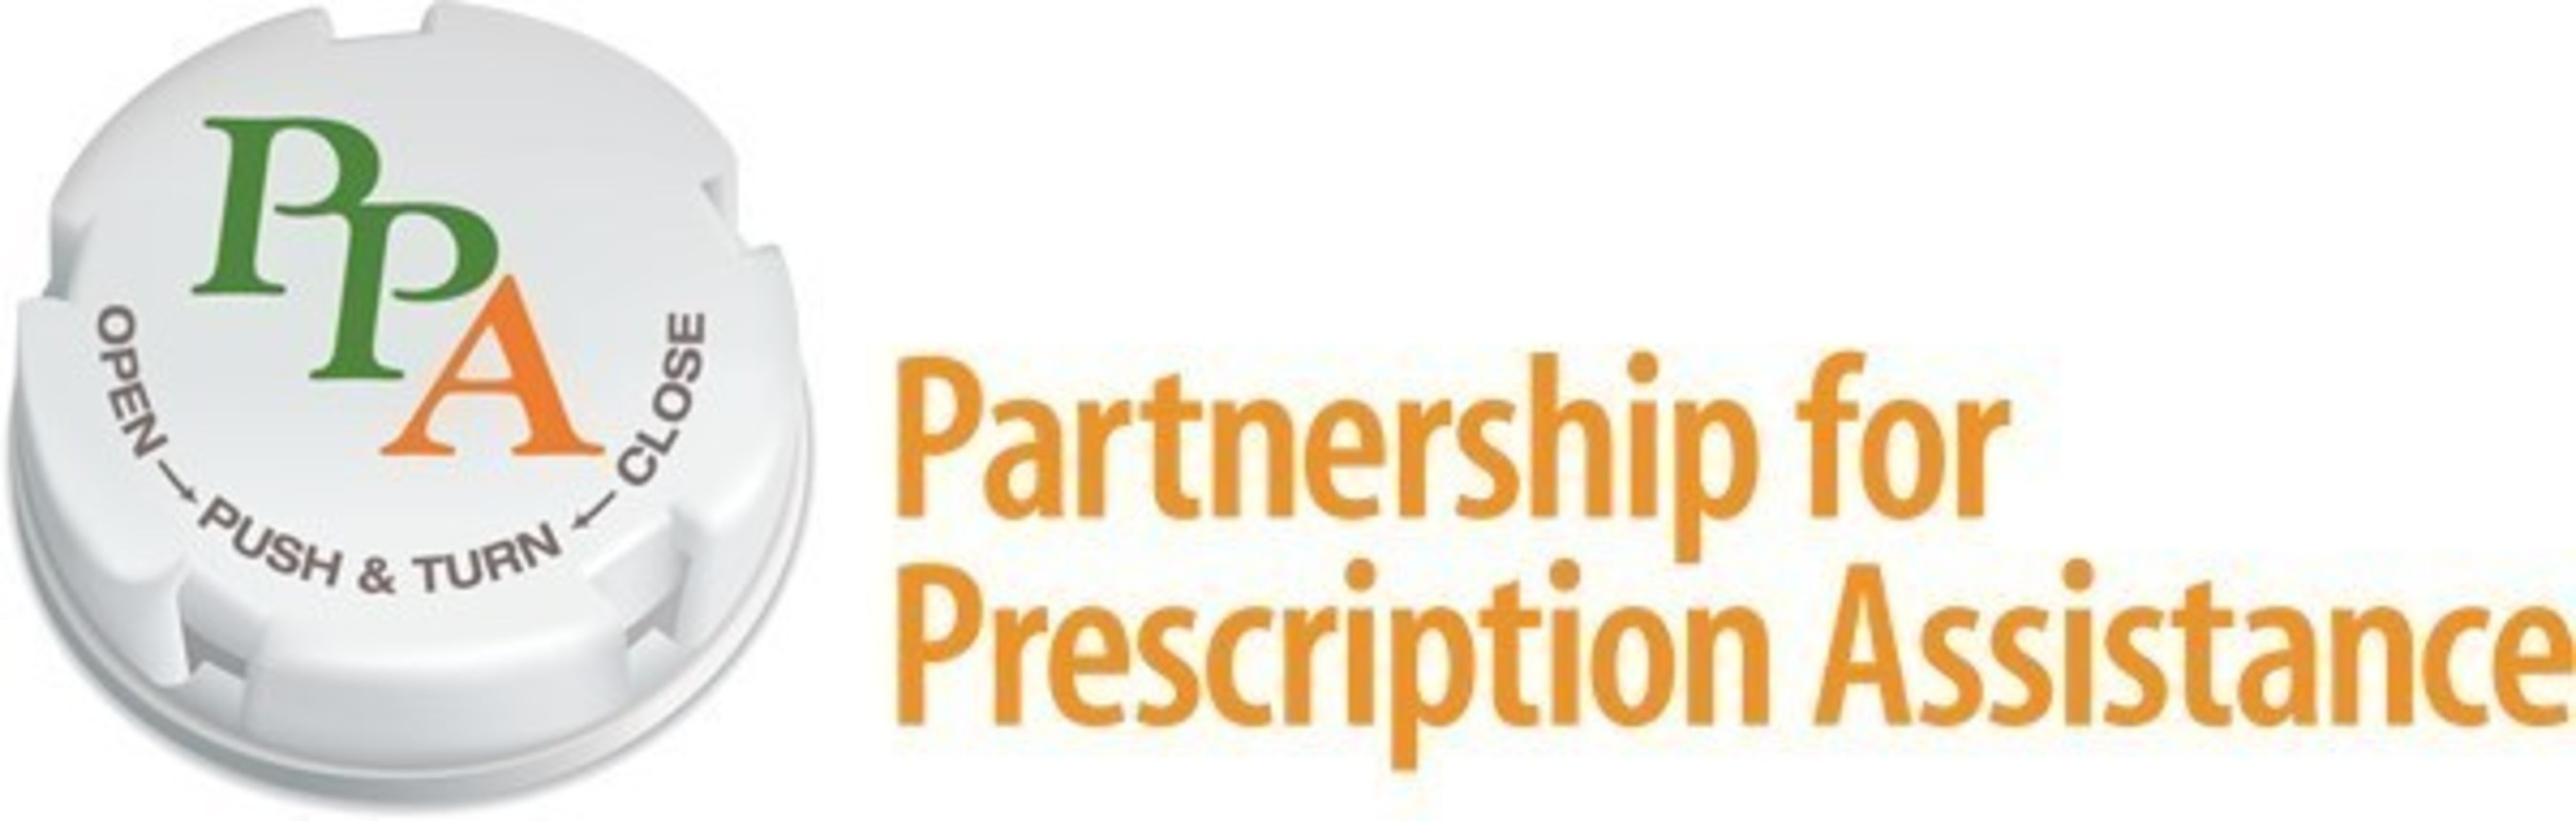 Partnership for Prescription Assistance